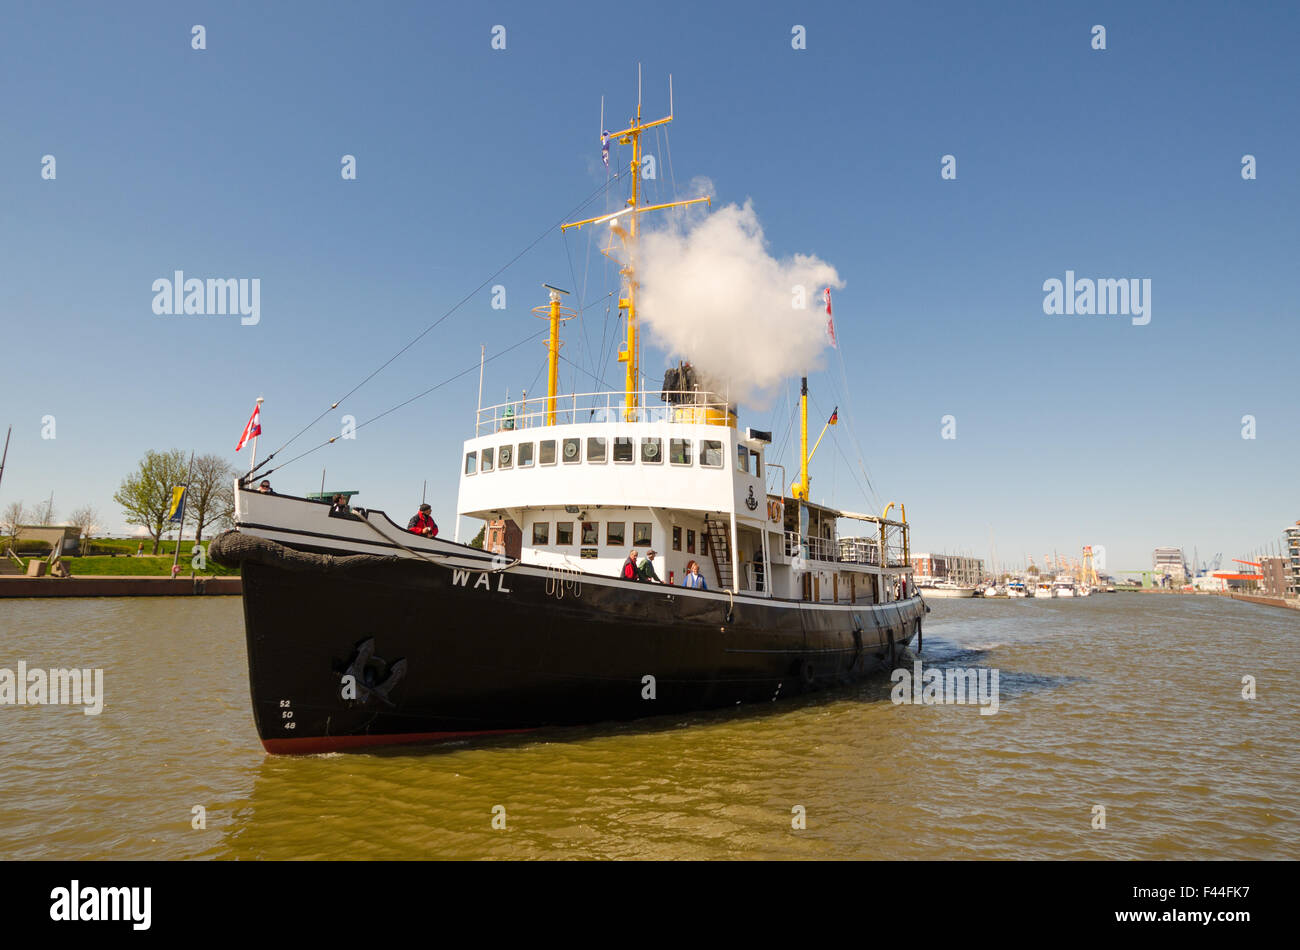 Icebreaker Stock Photo